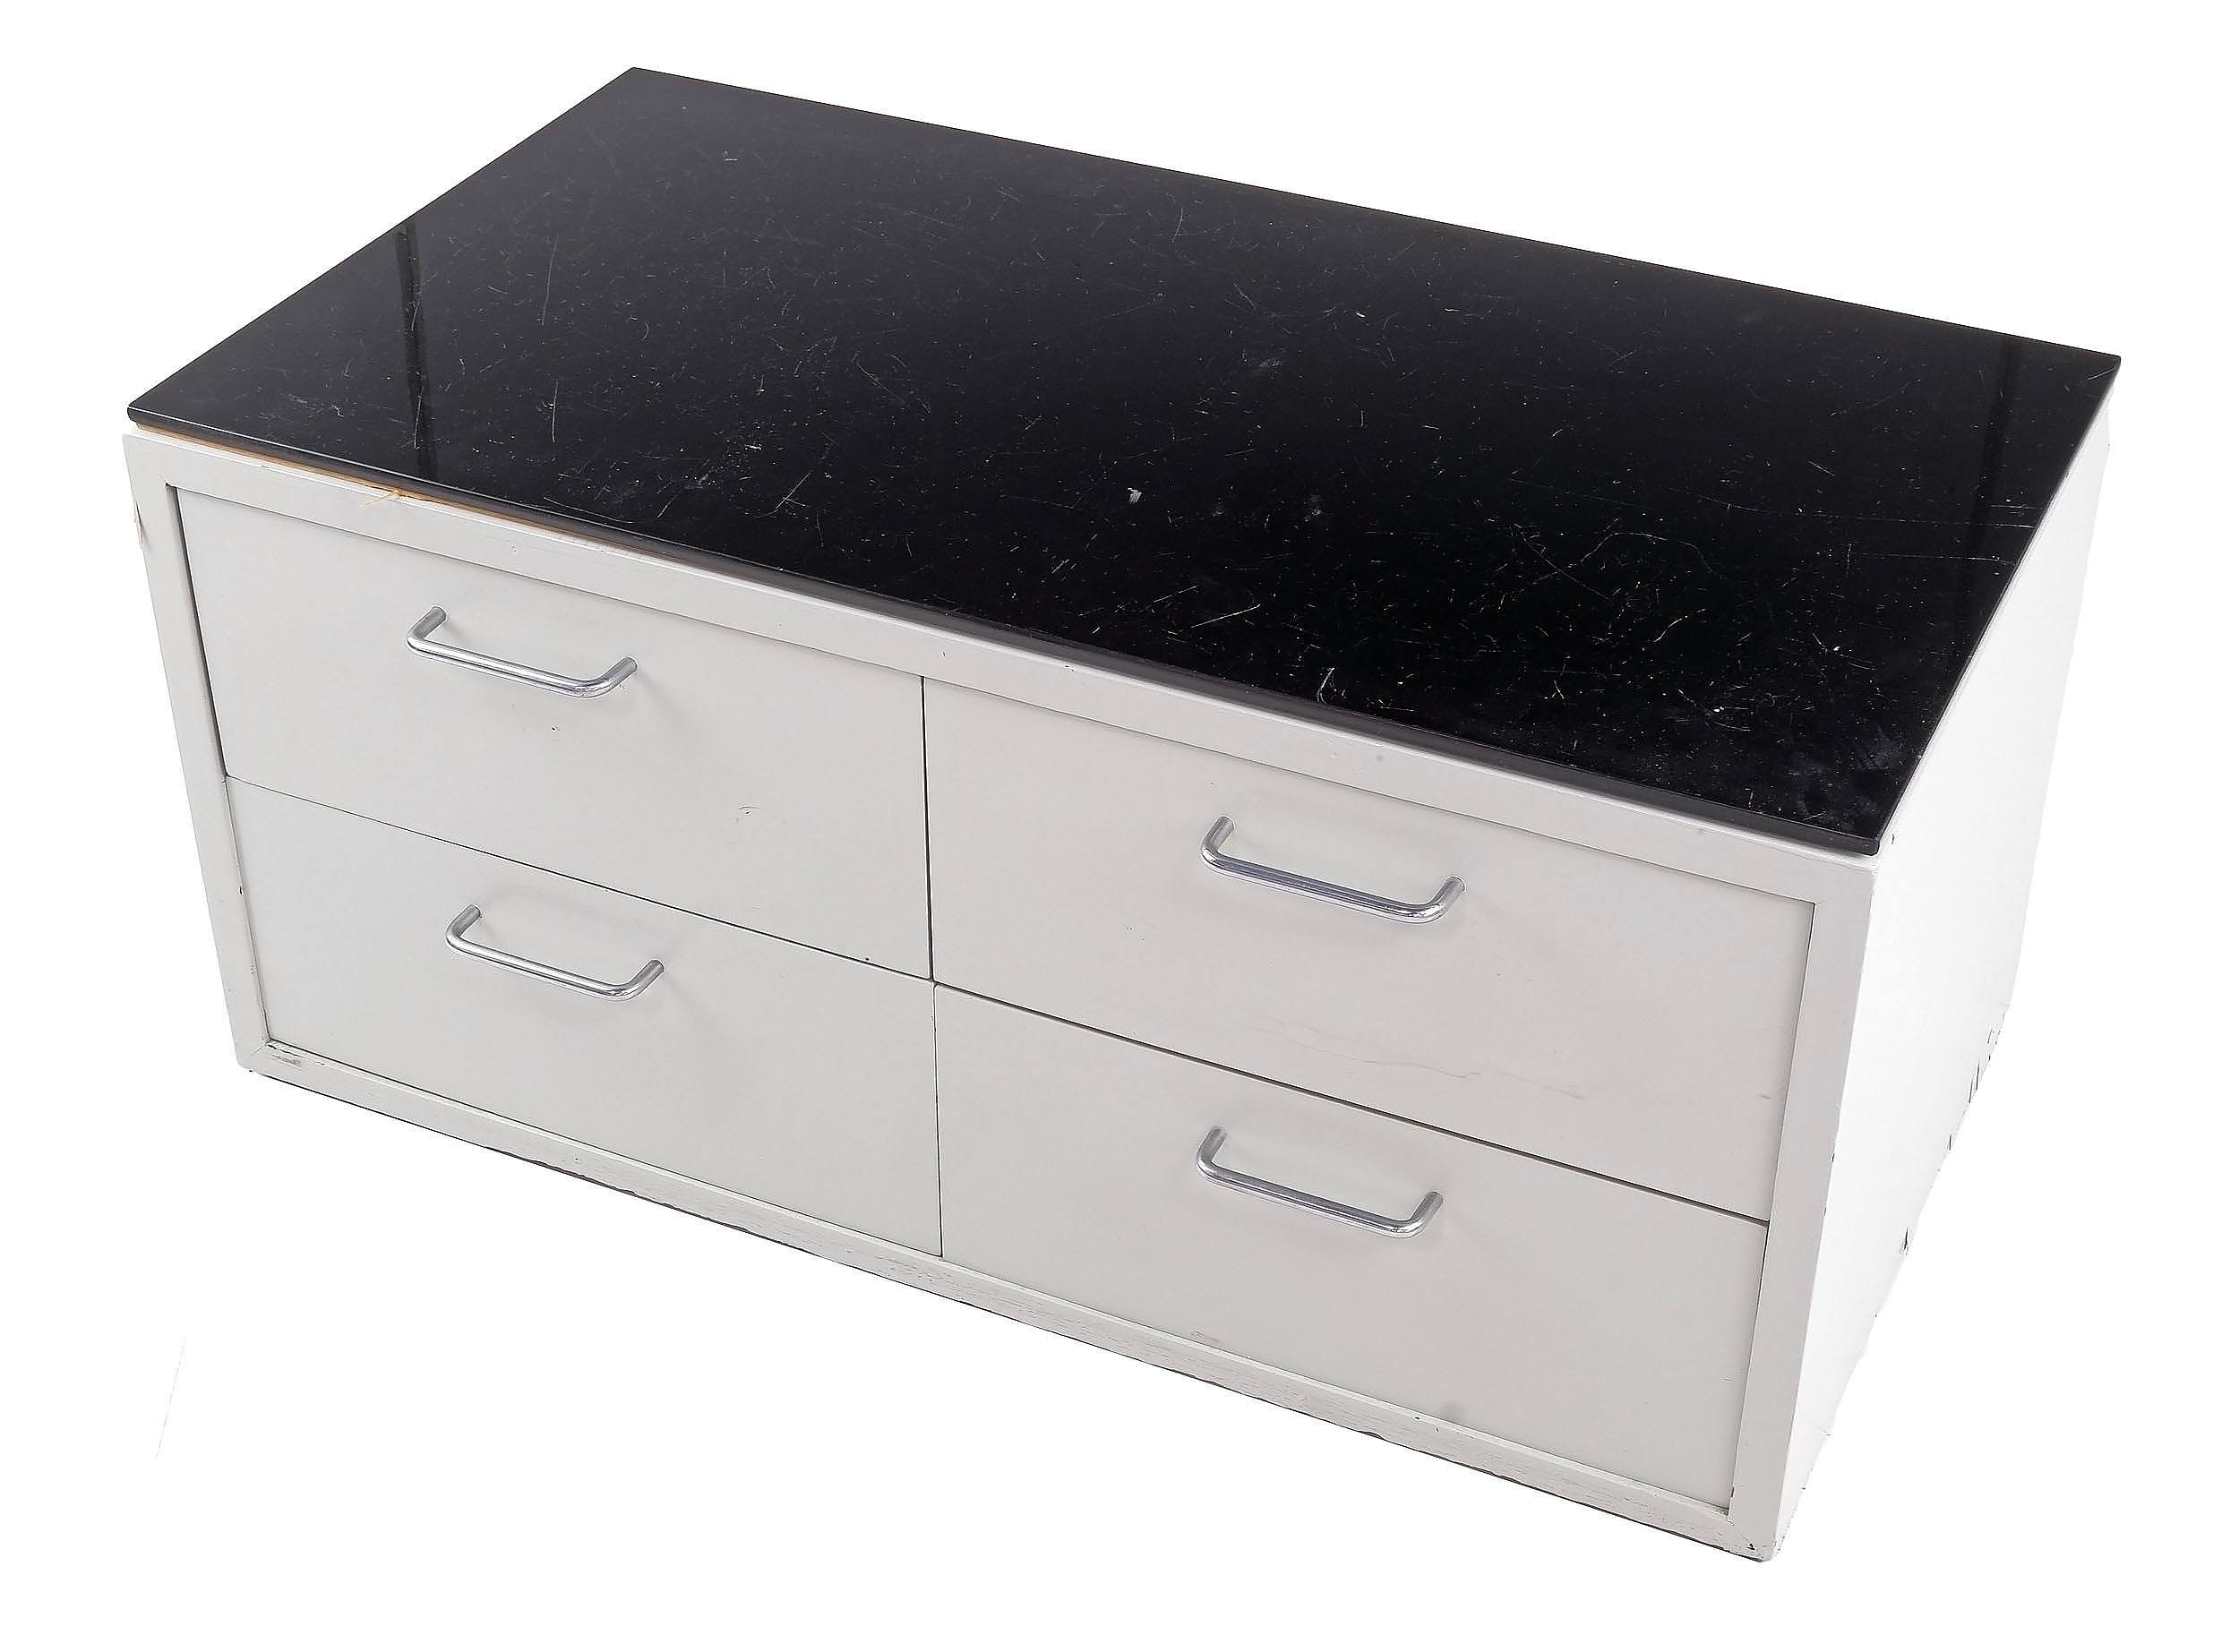 'Black Glass Topped Chest of Drawers with Chrome D Handles from Waks House 1 in Northbridge (Designed by Harry Seidler)'